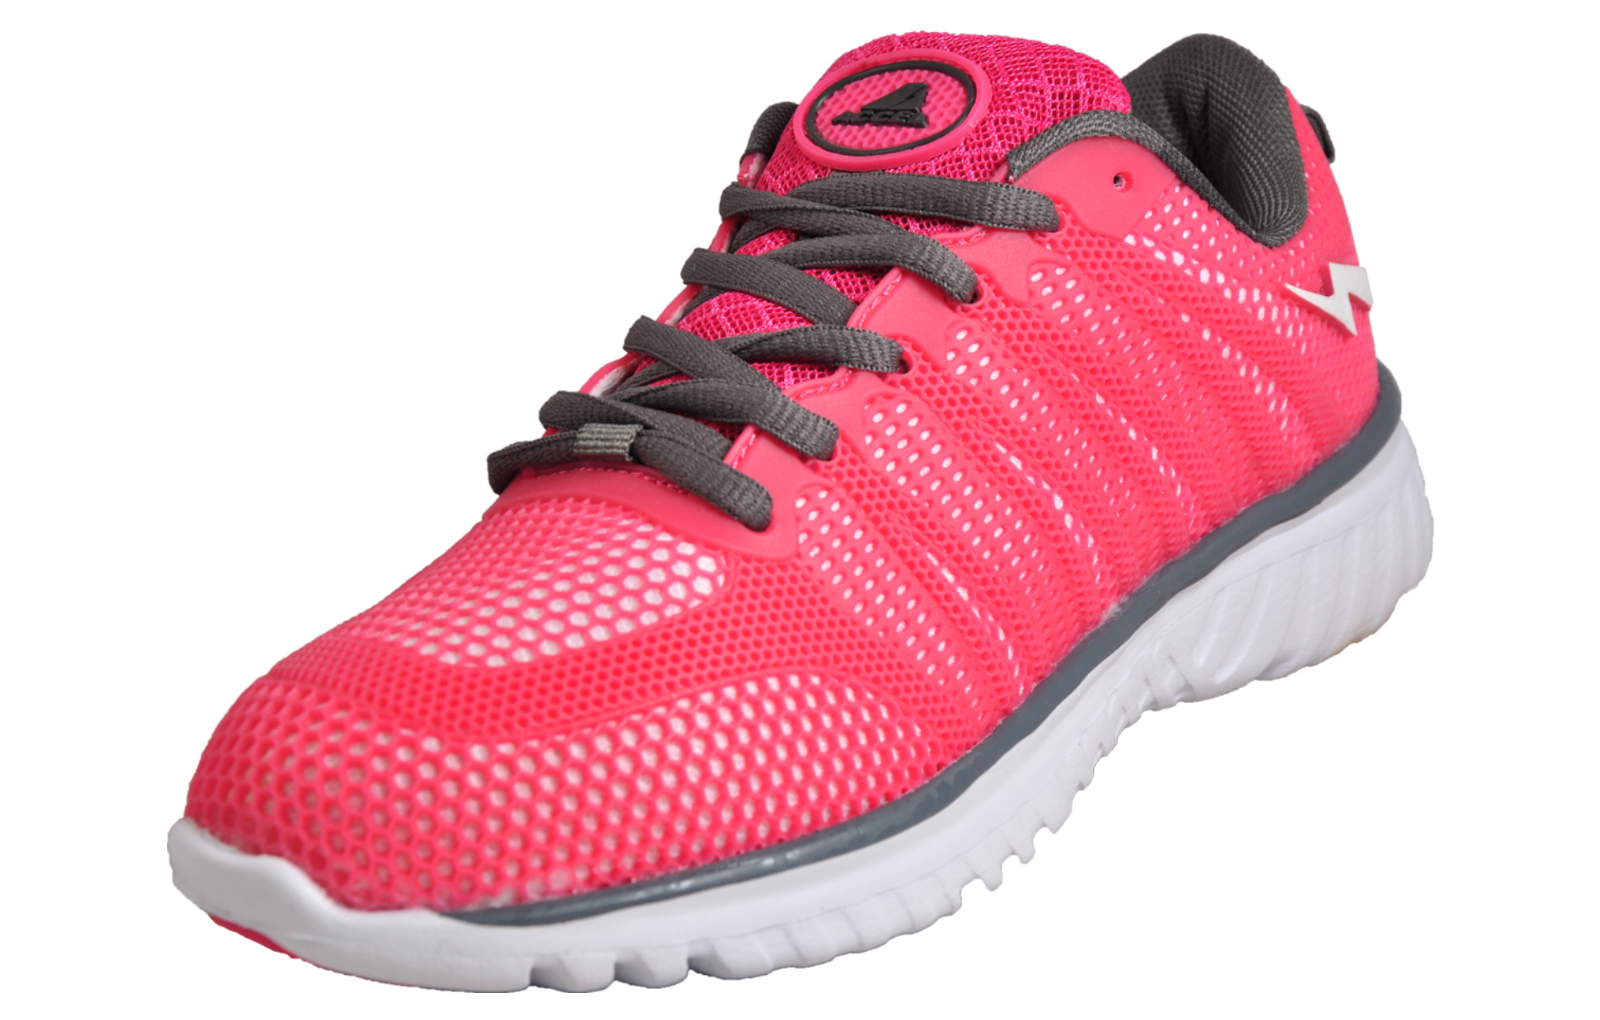 Airtech Accel Elite 2 Womens - AT171025